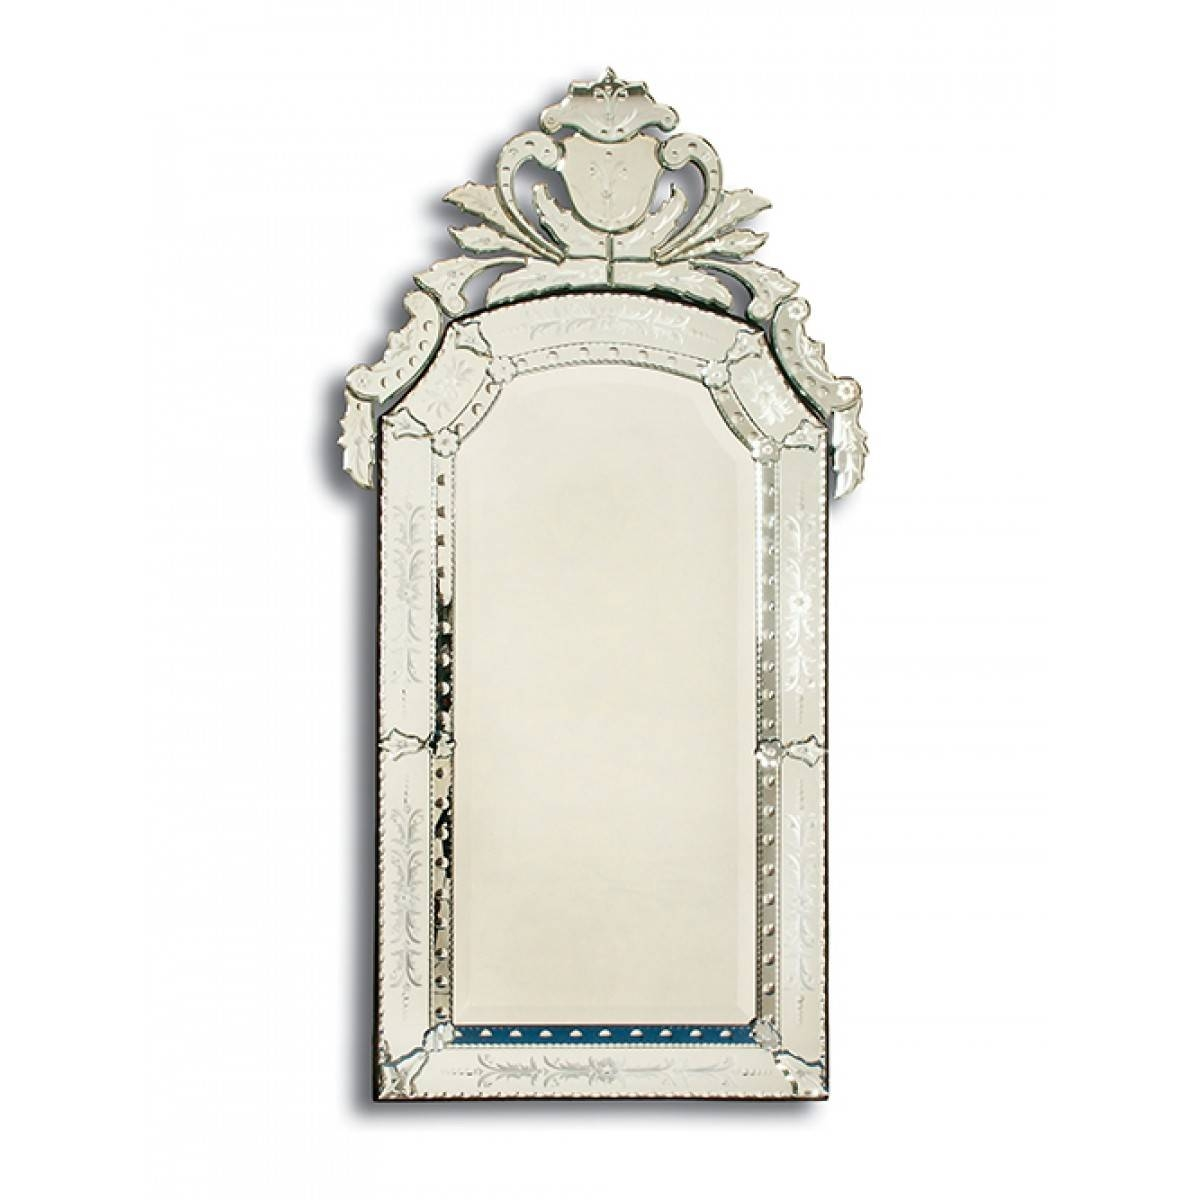 La Barge Mirrors & Table Outlet | Discount La Barge within Square Venetian Mirrors (Image 14 of 25)